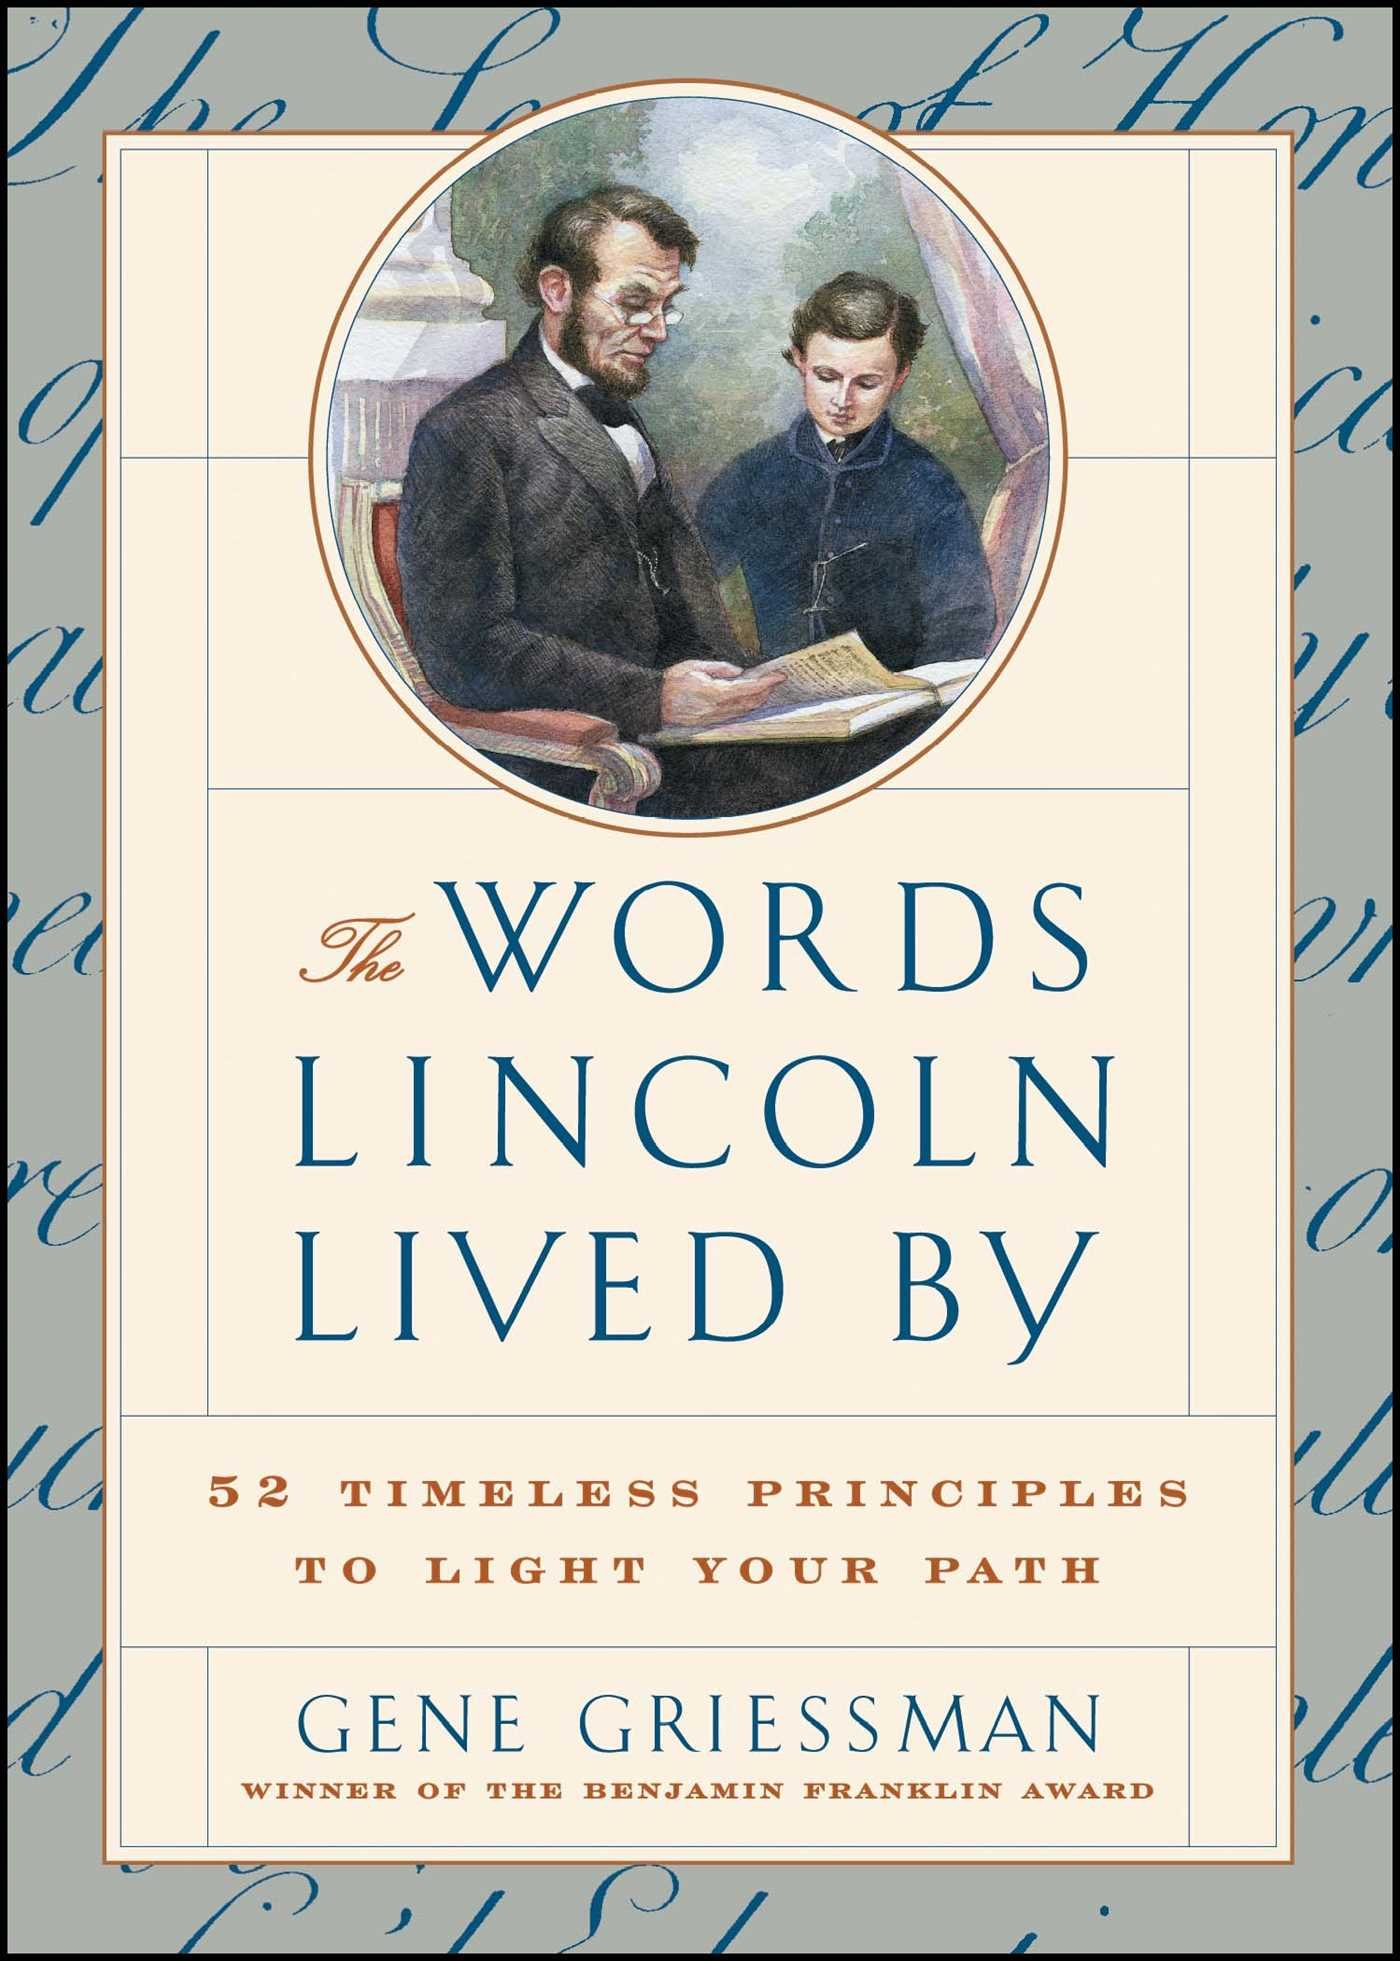 The Words Lincoln Lived By: 52 Timeless Principles to Light Your Path